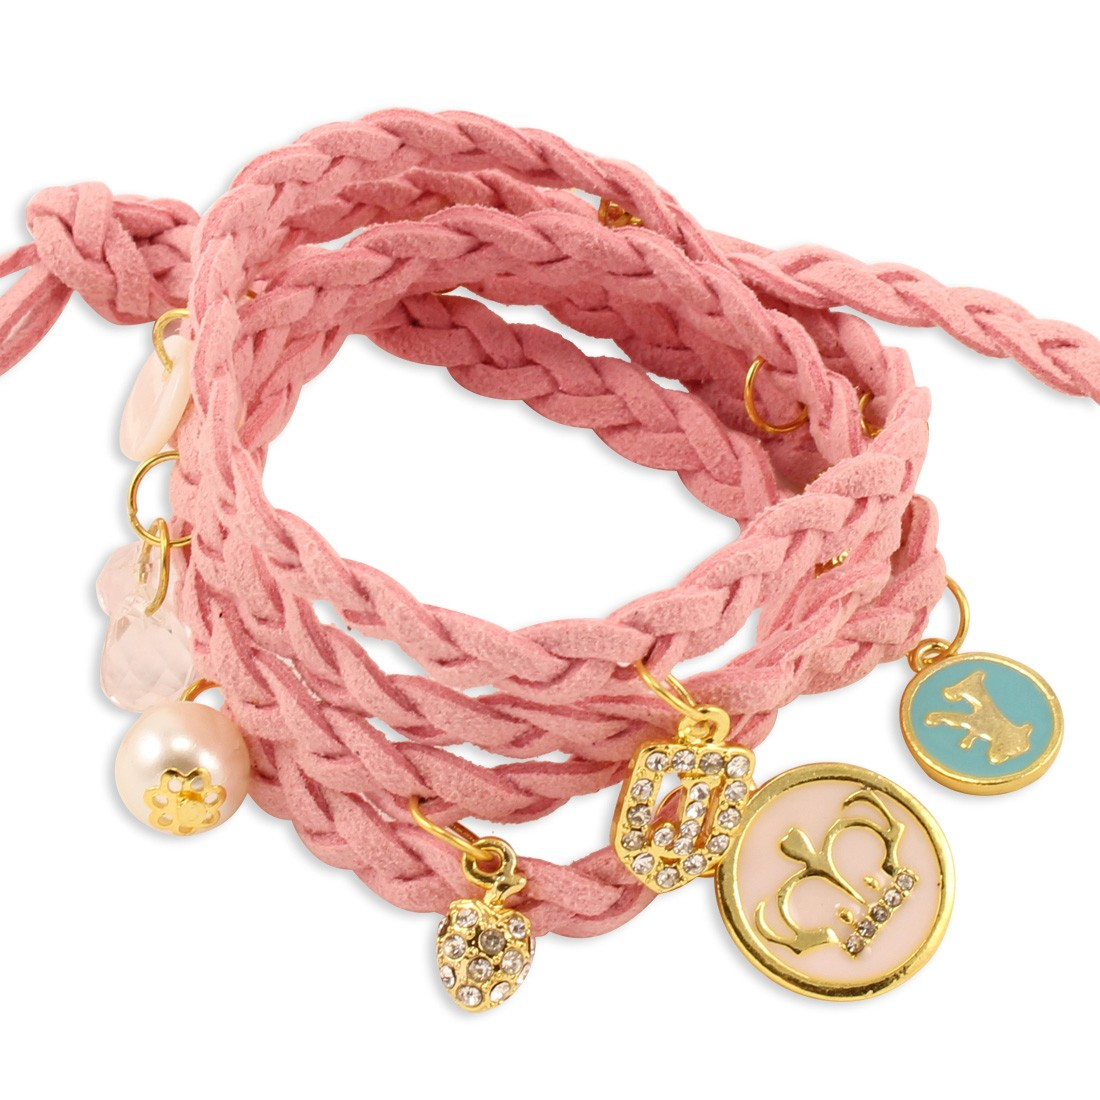 Designer Friendship Bracelets Uk